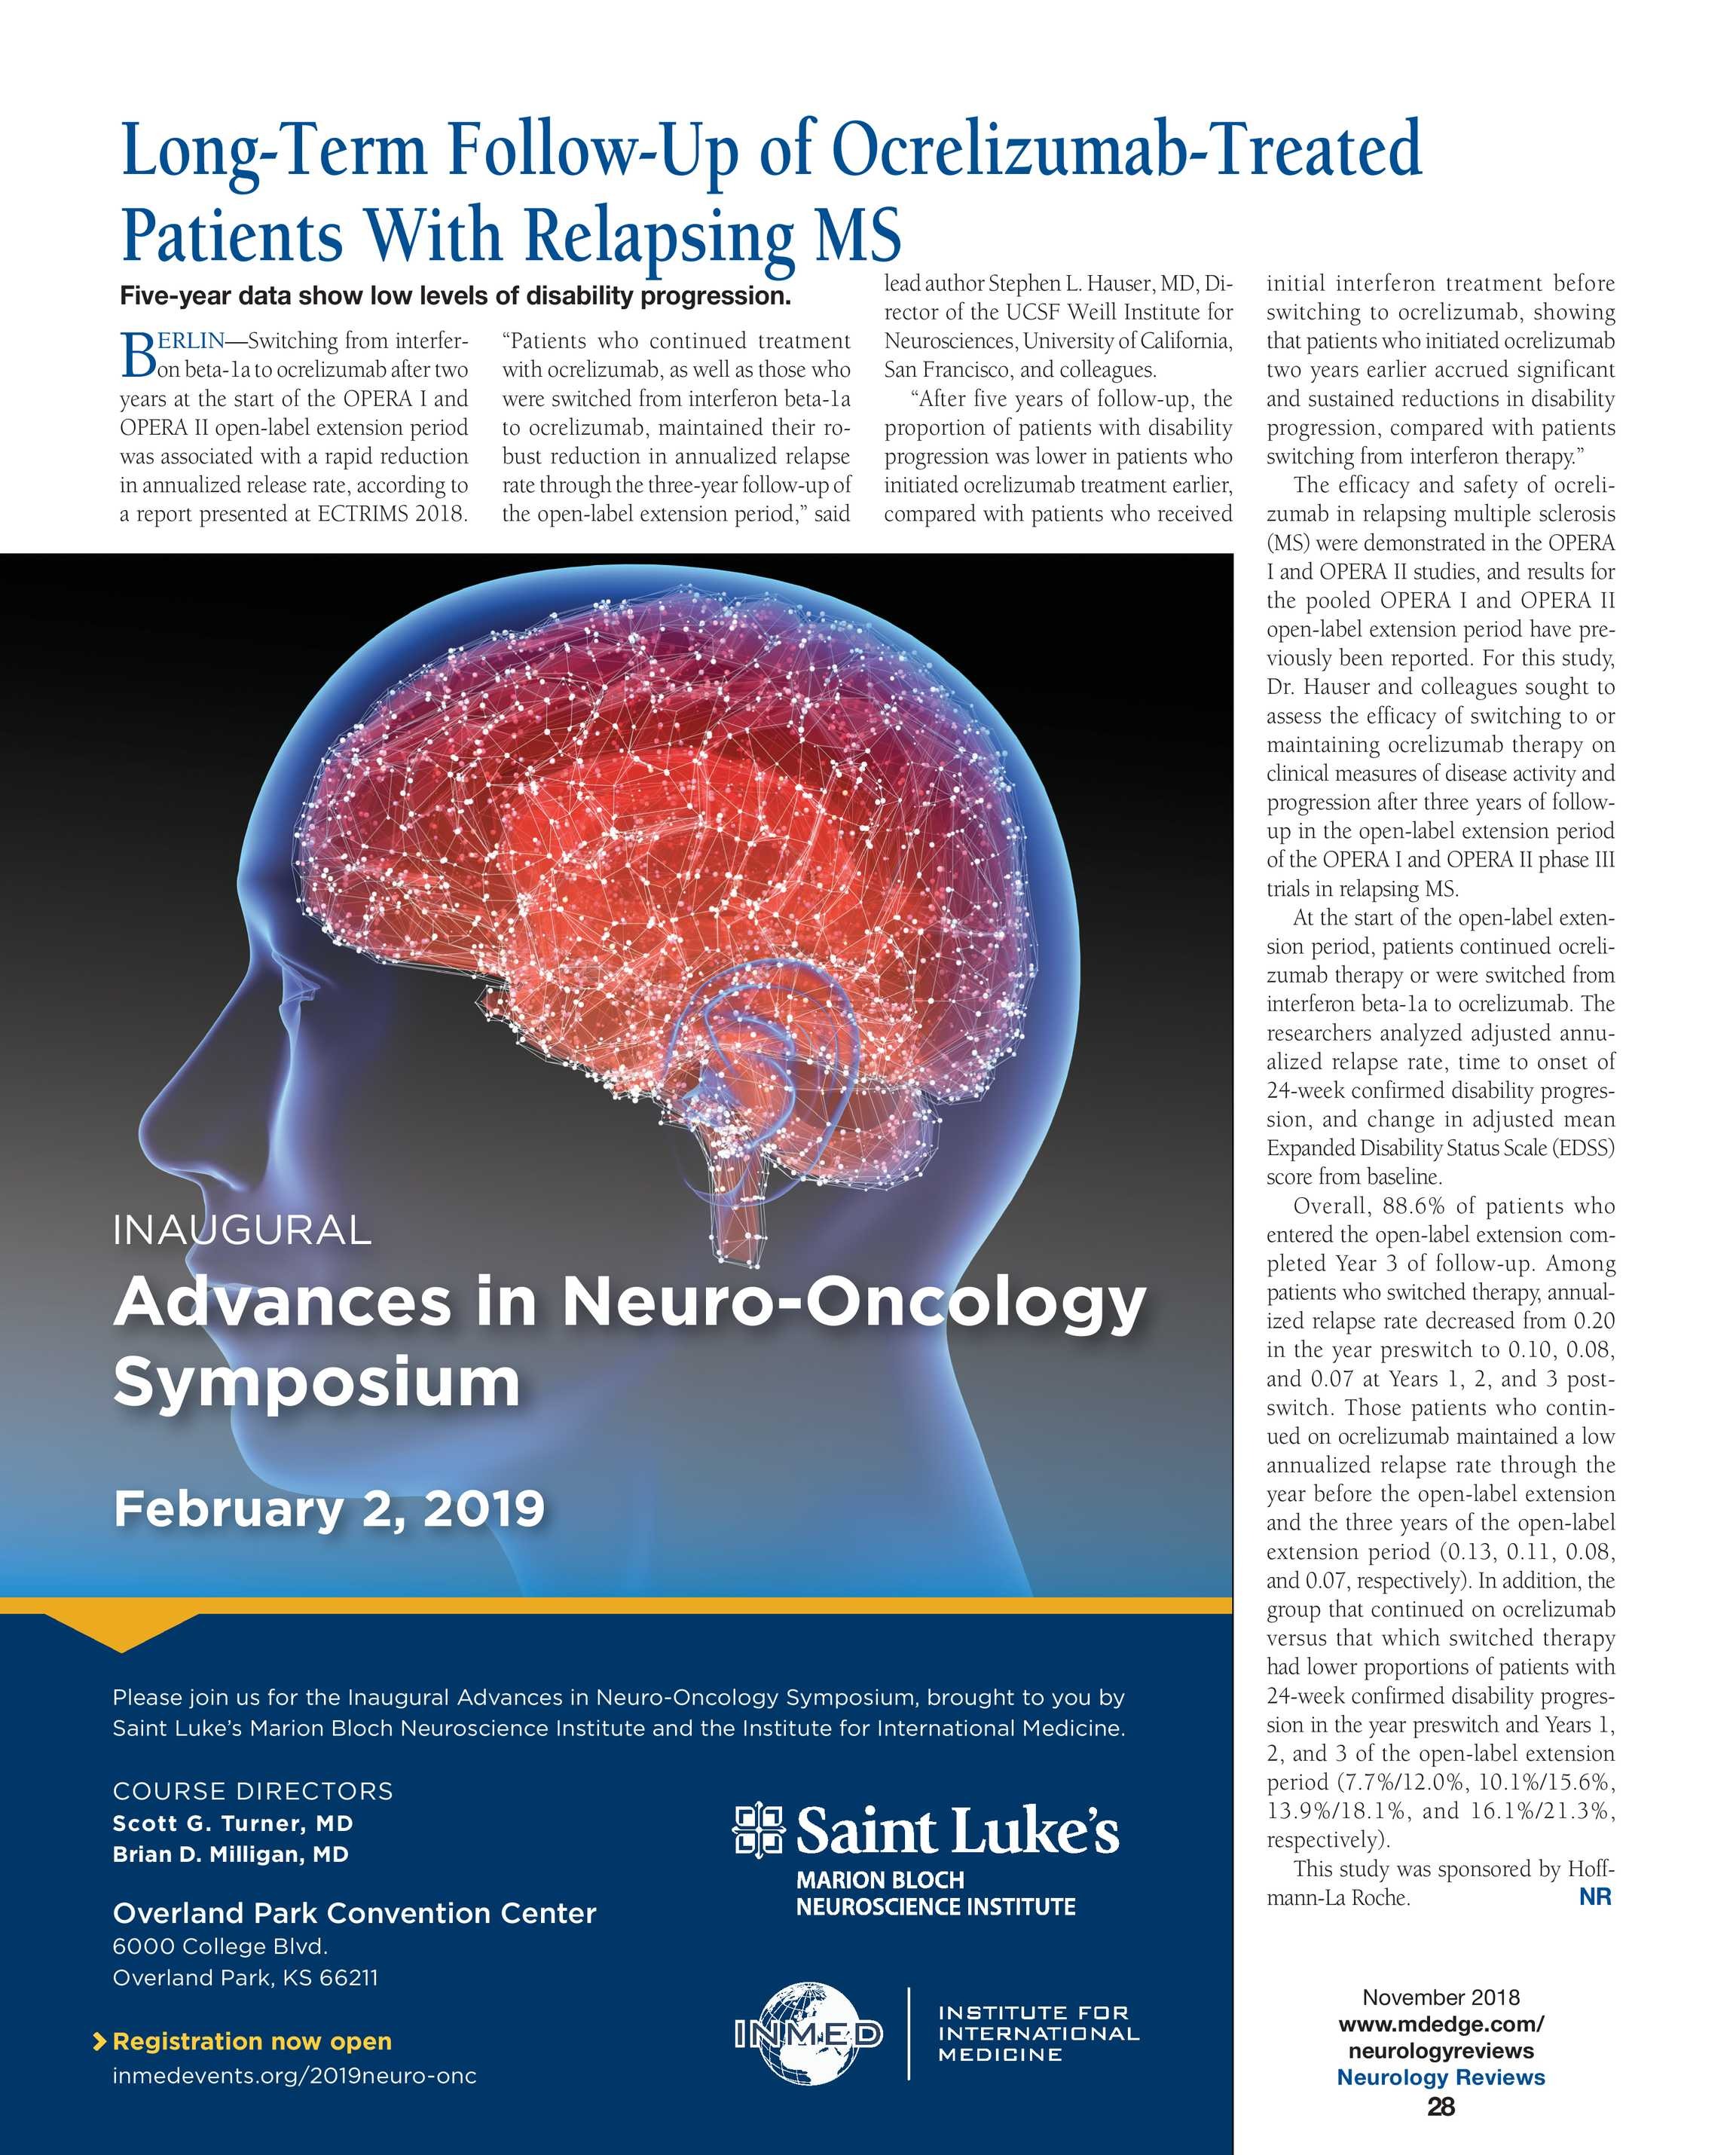 Neurology Reviews - NR NOV 2018 - page 27